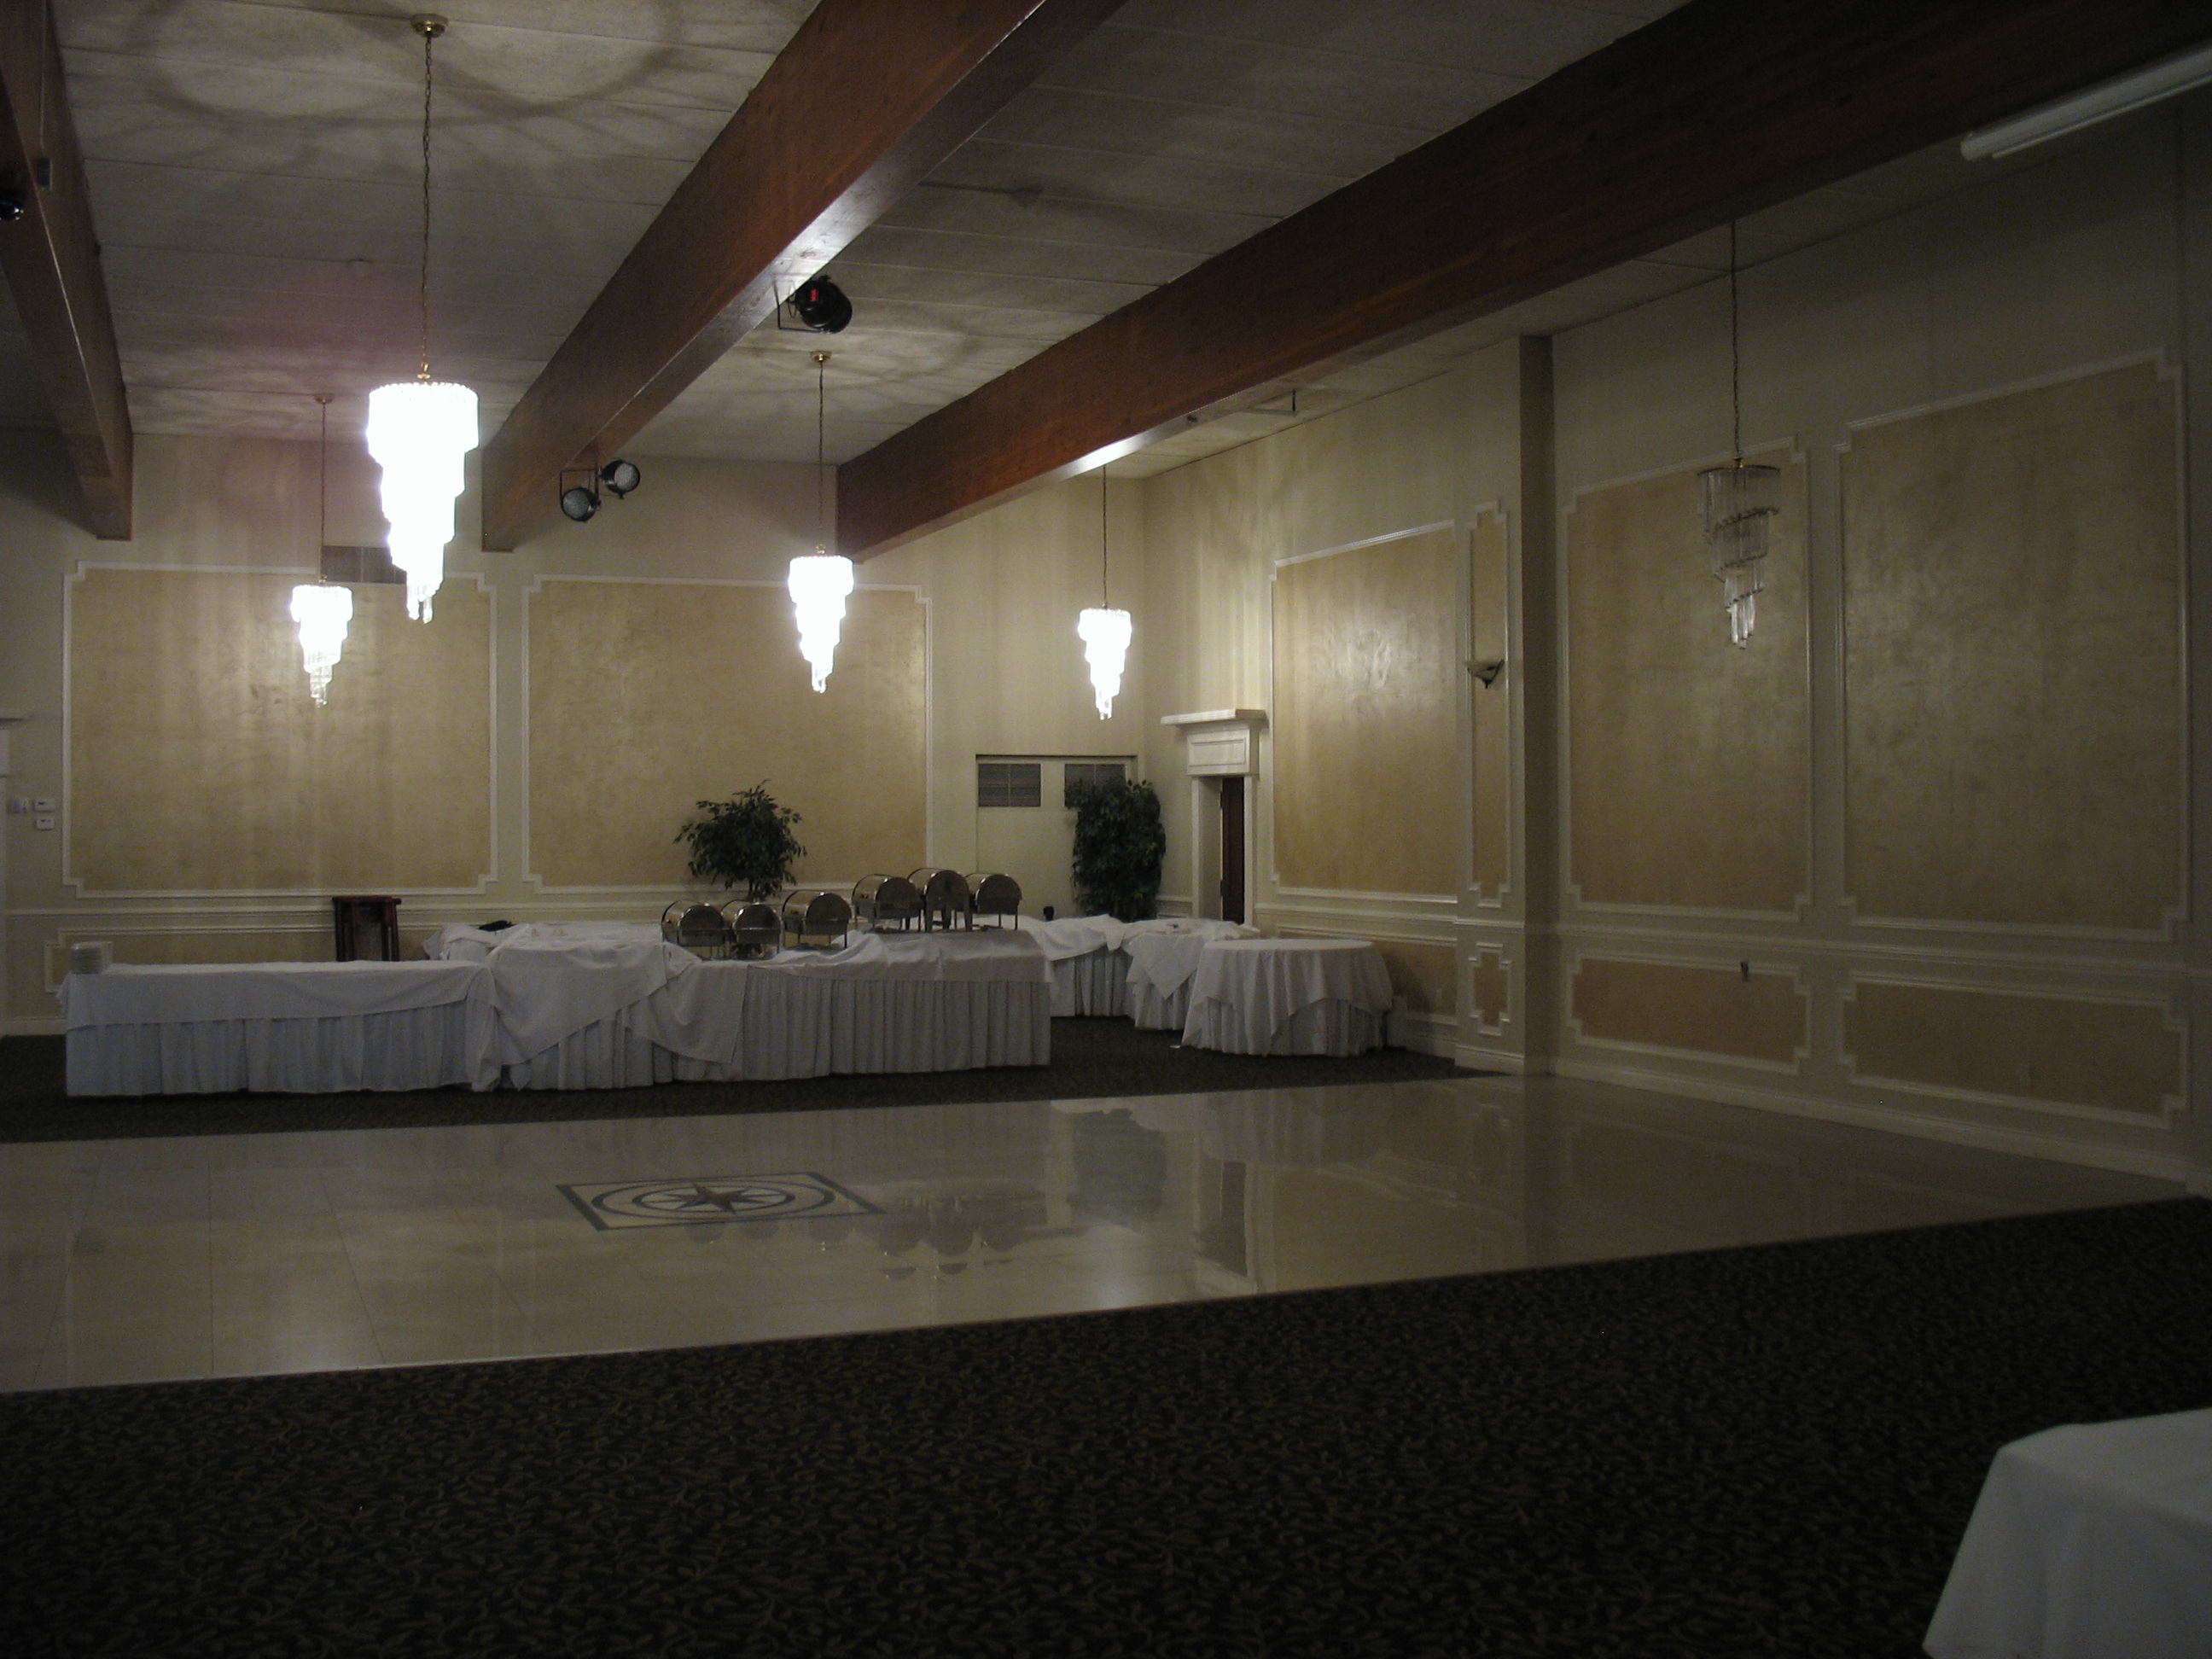 Mi, St clair shores, Lakeland banquet event centre